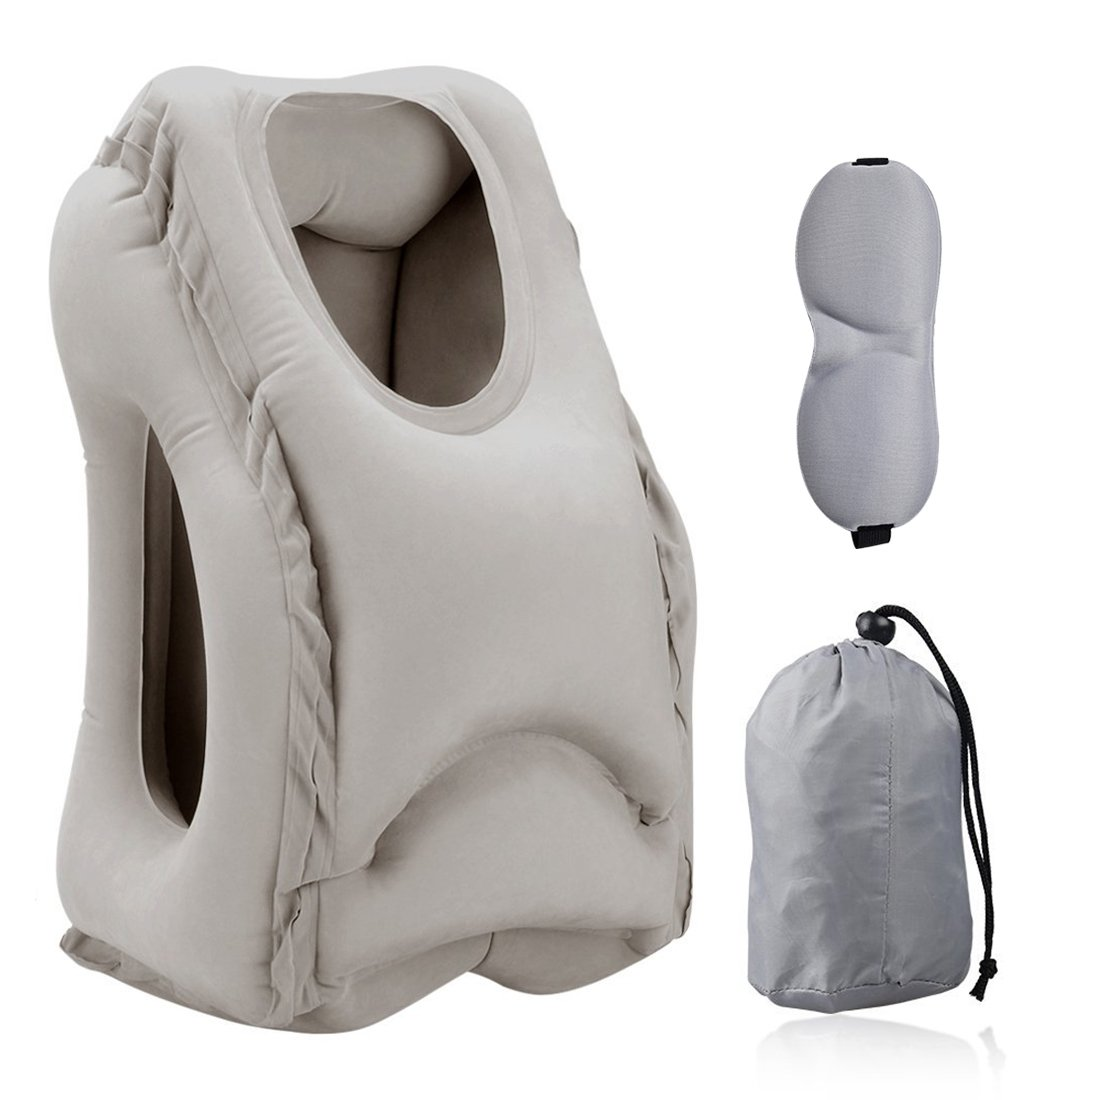 Travel Pillow, Portable Head Neck Rest Inflatable Pillow from HOMCA, Design for Airplanes, Cars, Buses, Trains, Office Napping, Camping - Includes FREE Eye Mask (Black) COMIN18JU083489